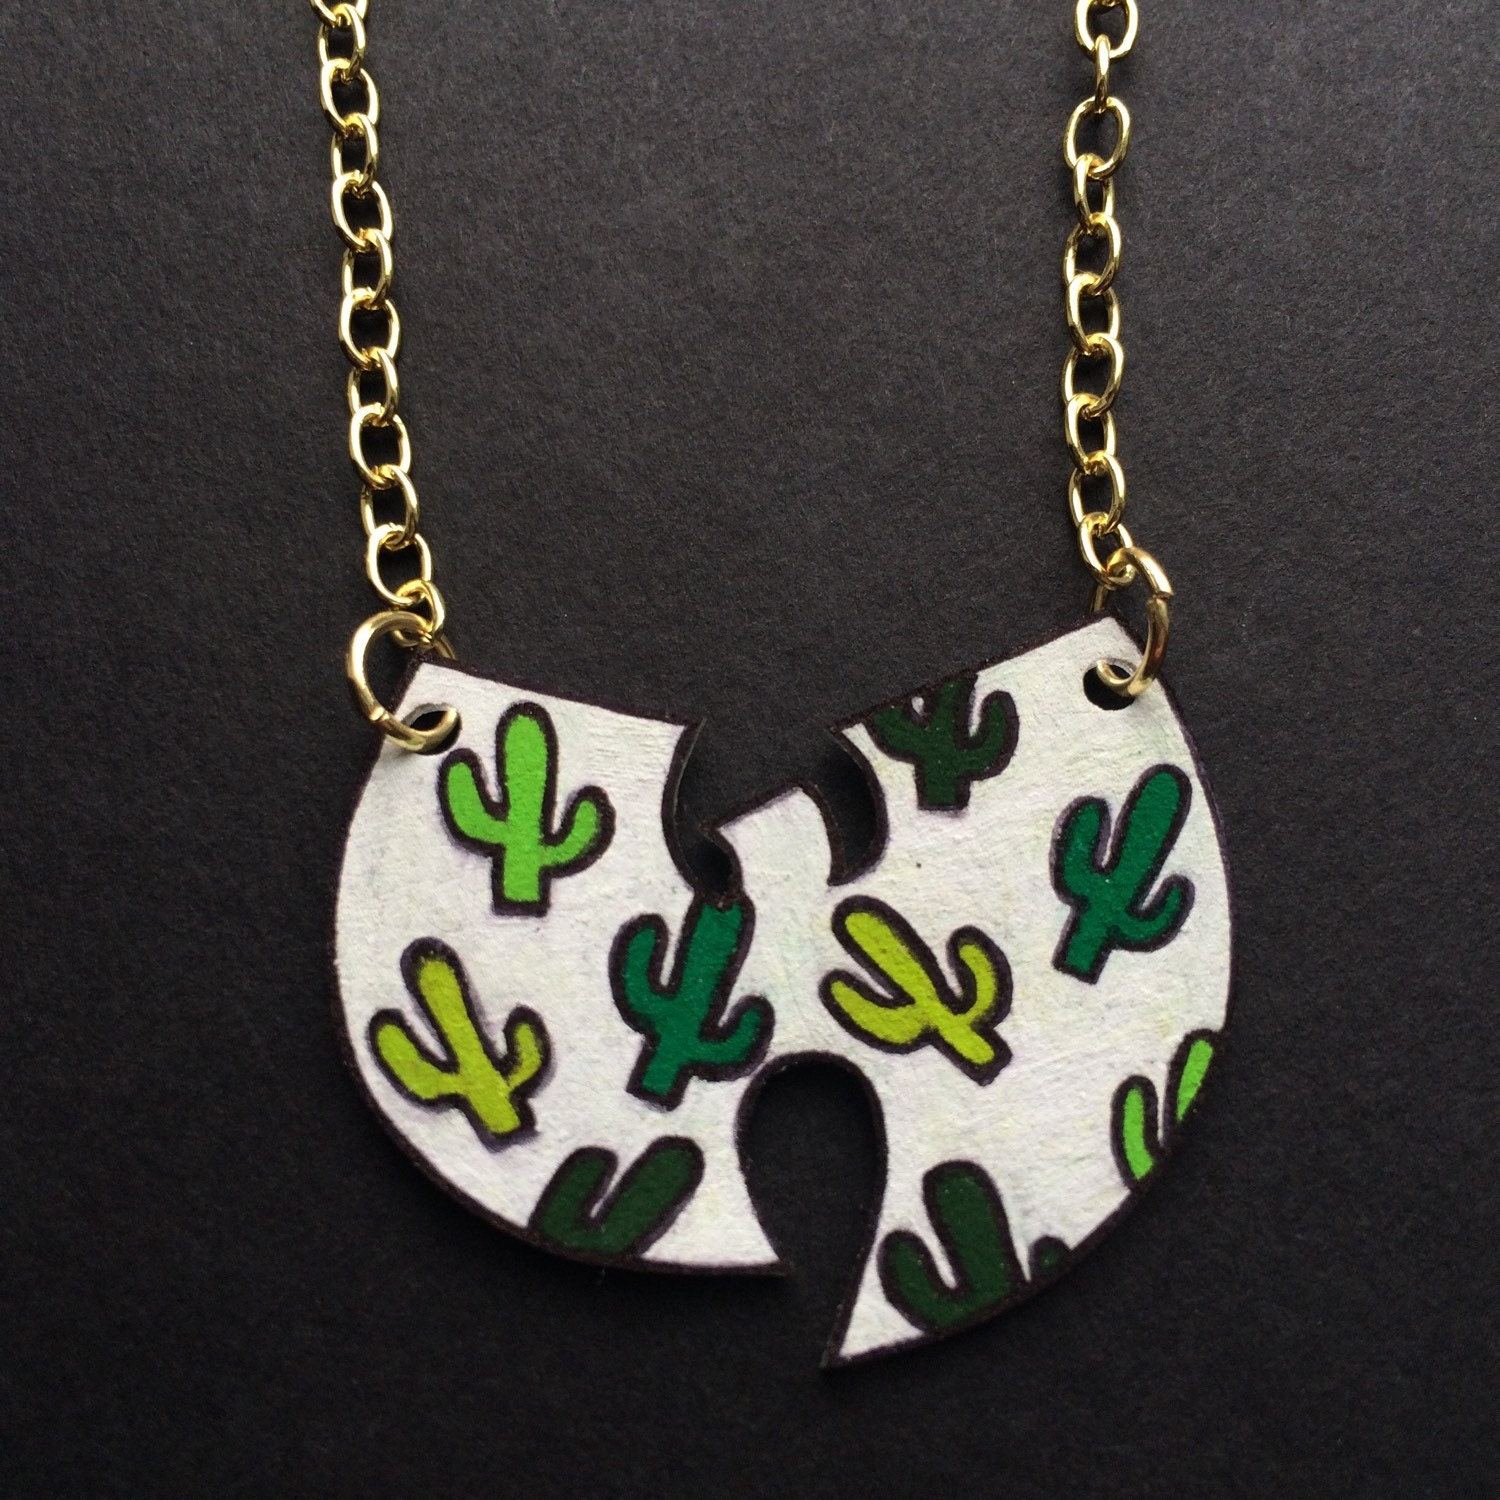 wu tang cactus clan necklace